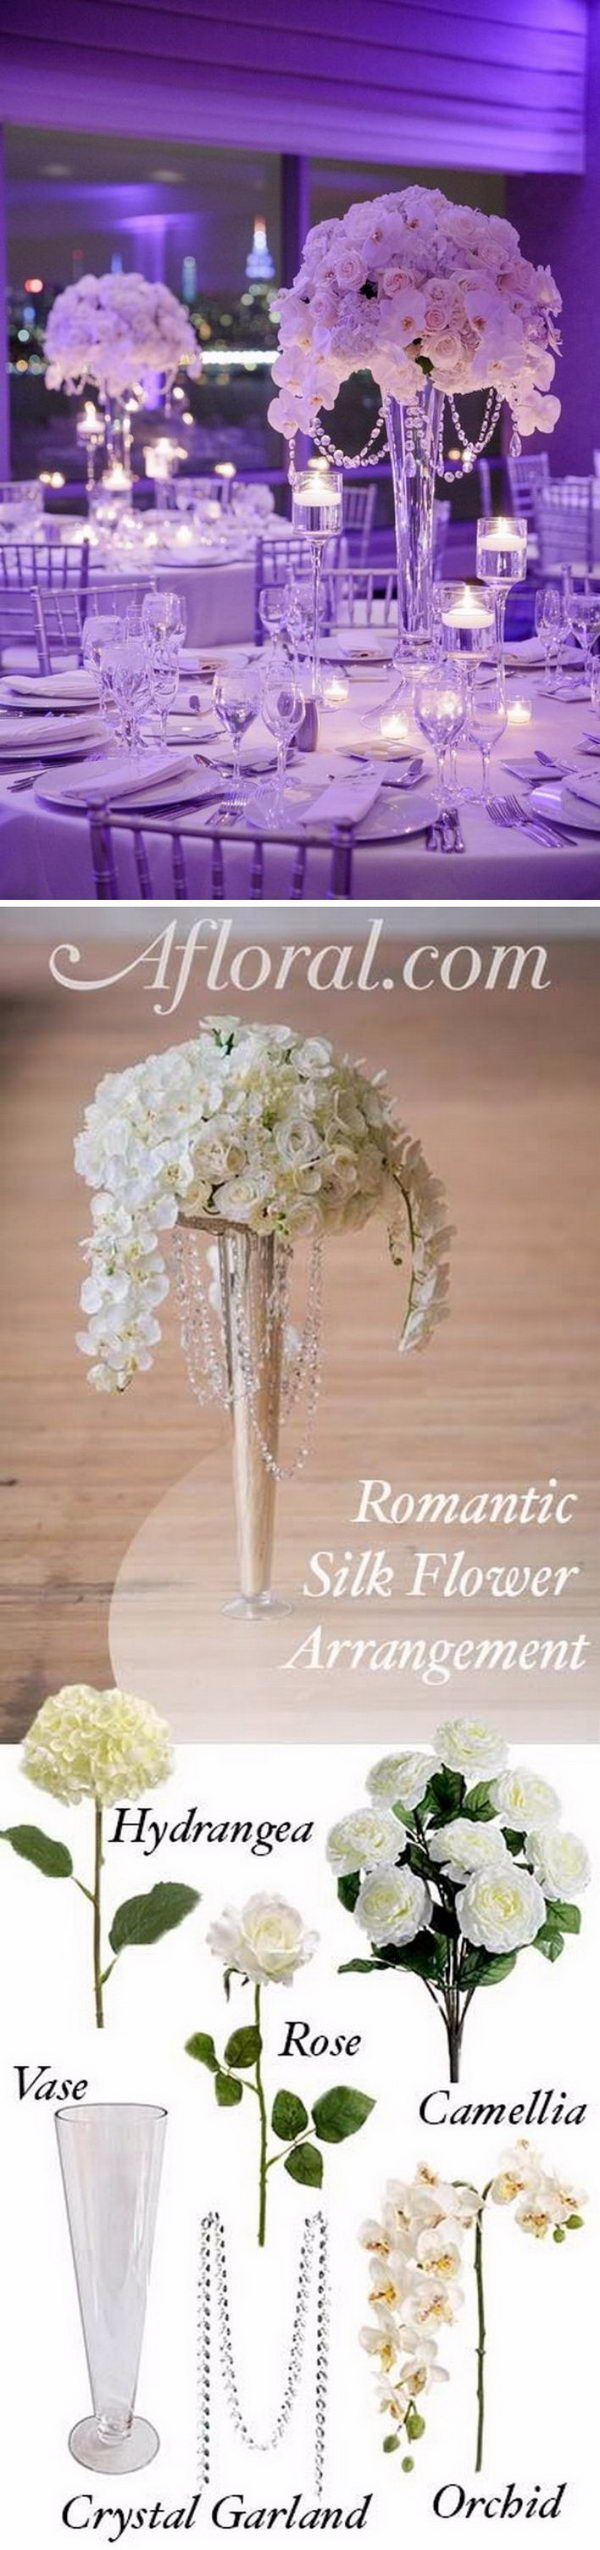 Tall Wedding Centerpiece with Crystals and Silk Flowers.